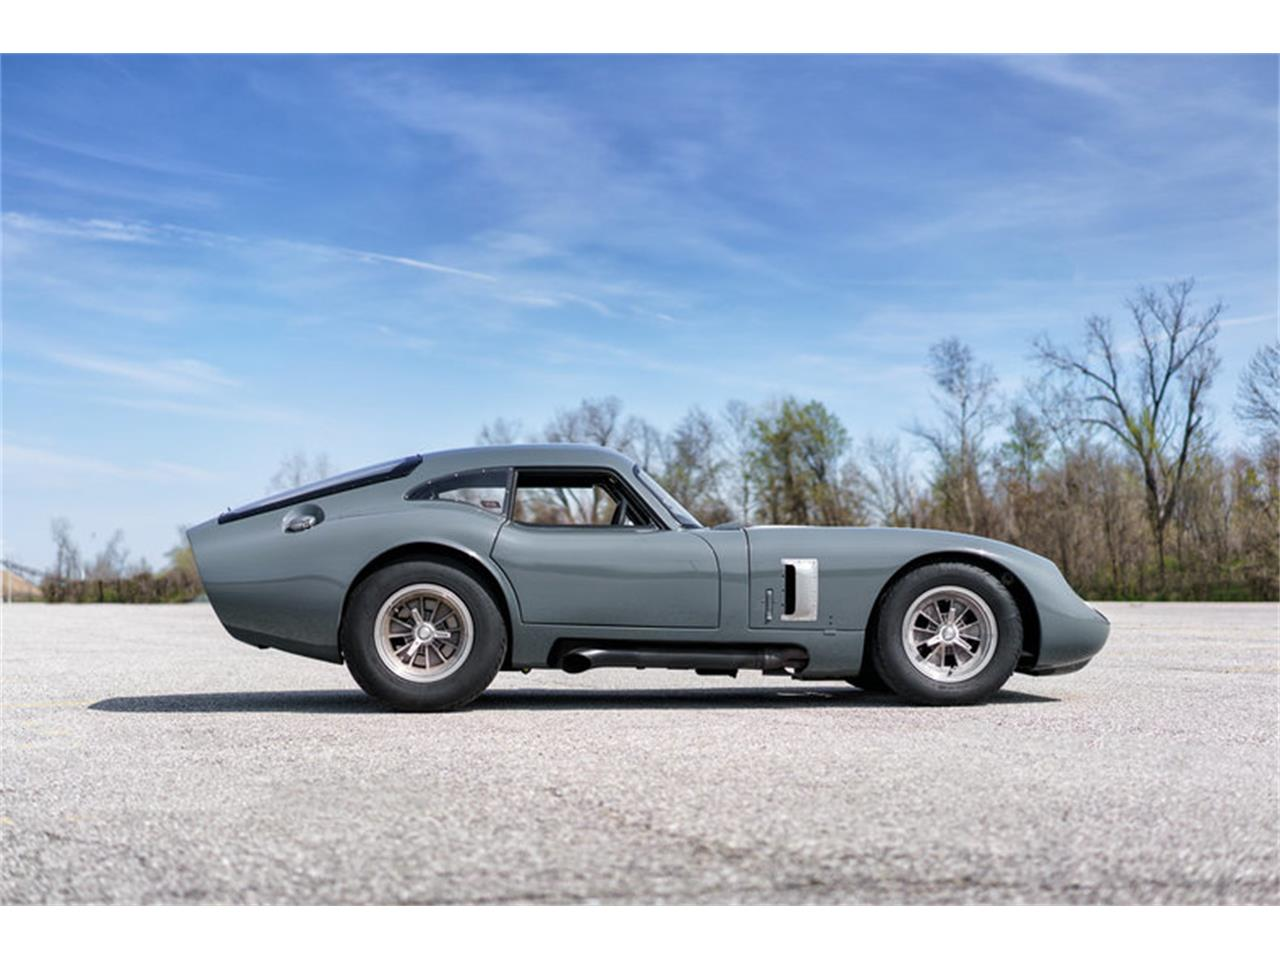 Large Picture of '64 Daytona located in St. Charles Missouri - $79,995.00 - H75H